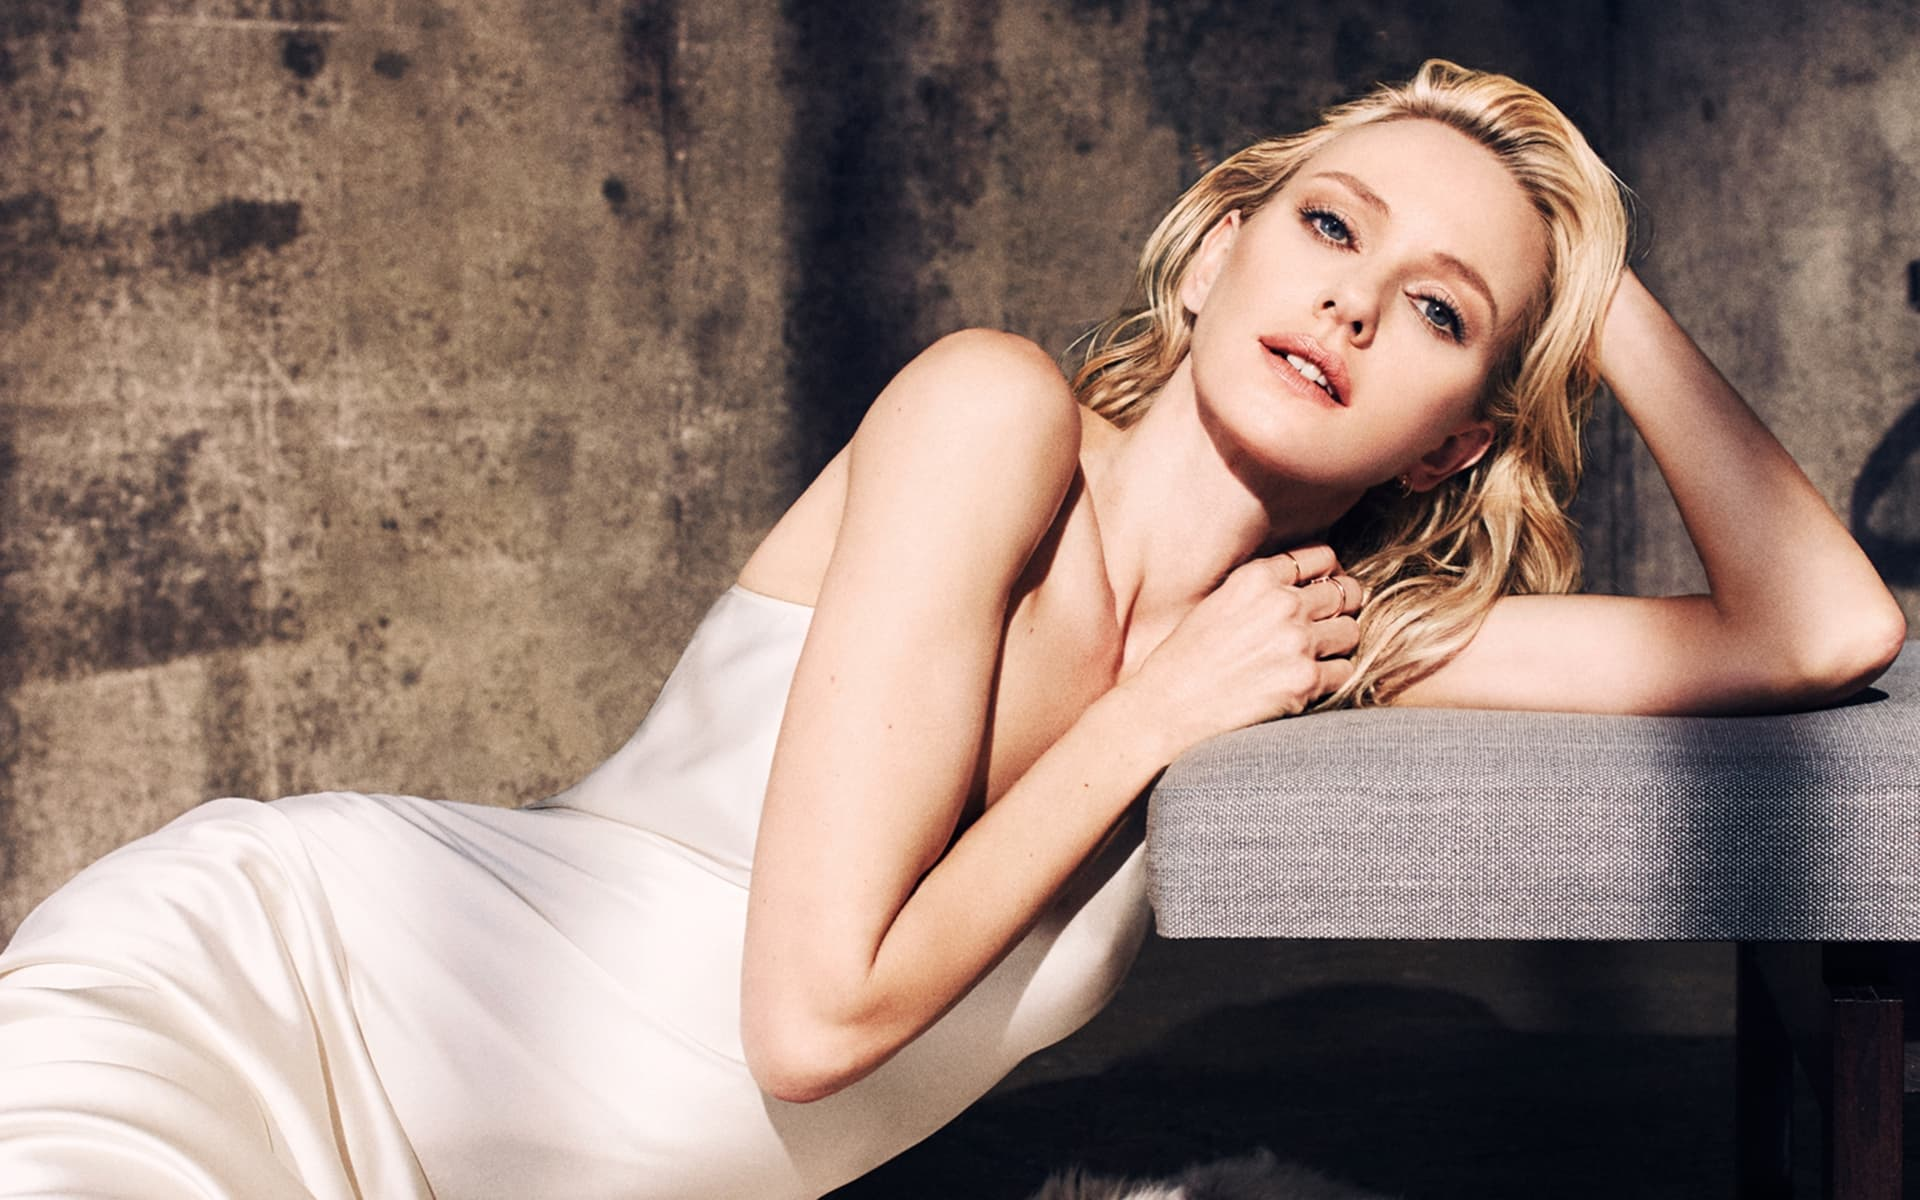 Naomi Watts Wallpapers High Quality Download 1920x1200